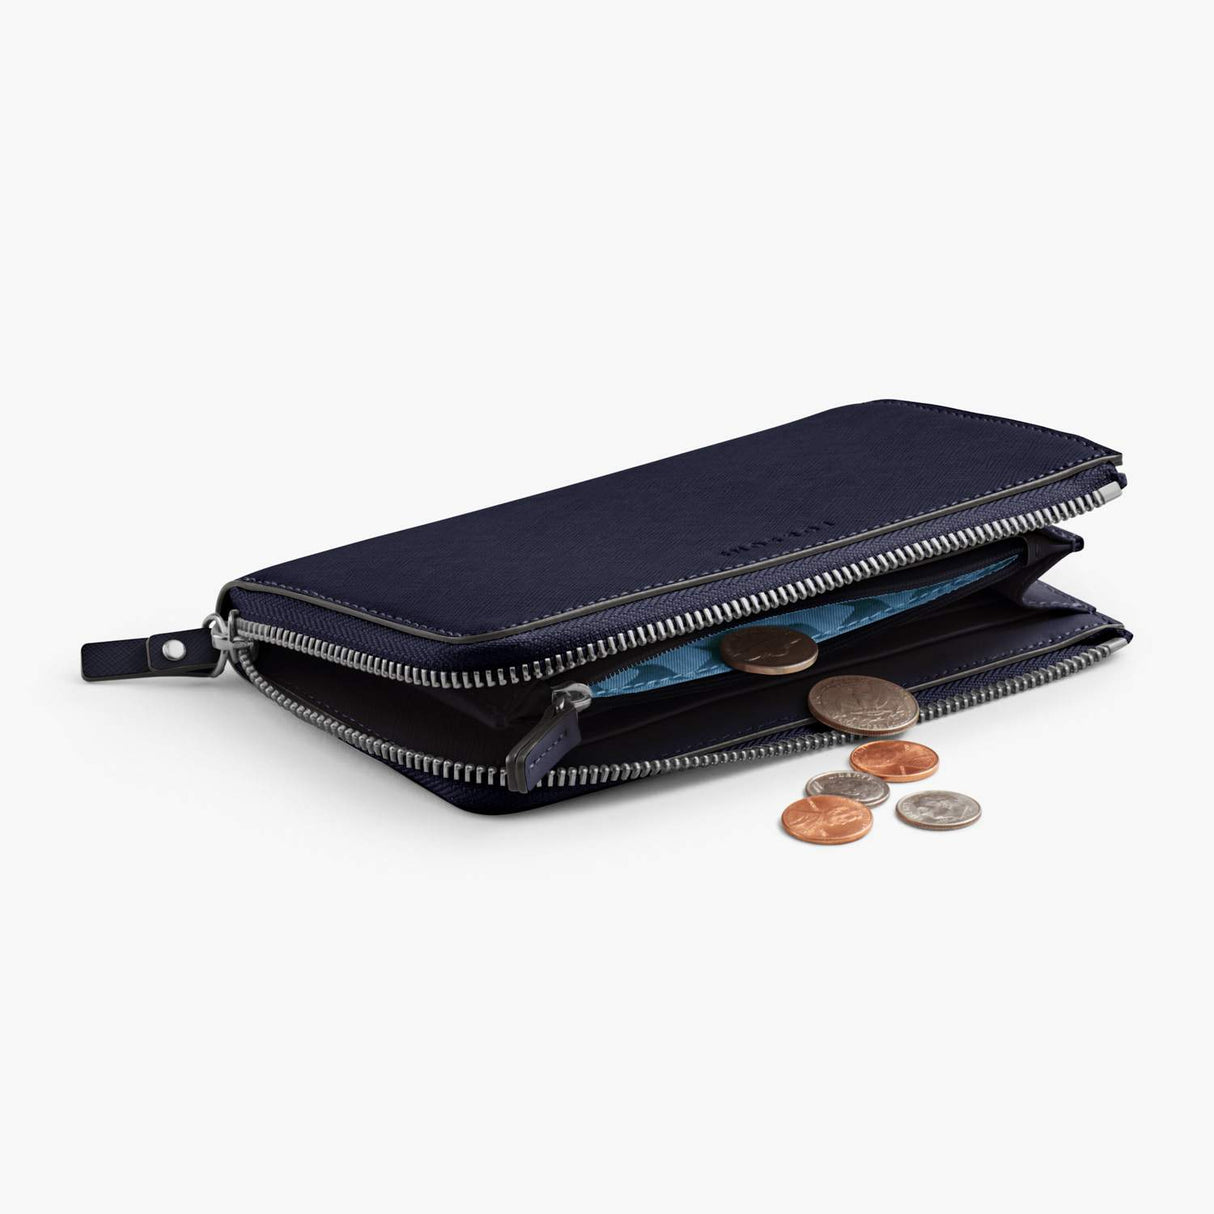 Coins - Leather Wallet - Saffiano Leather - Deep Navy / Silver / Azure - Small Accessory - Lo & Sons